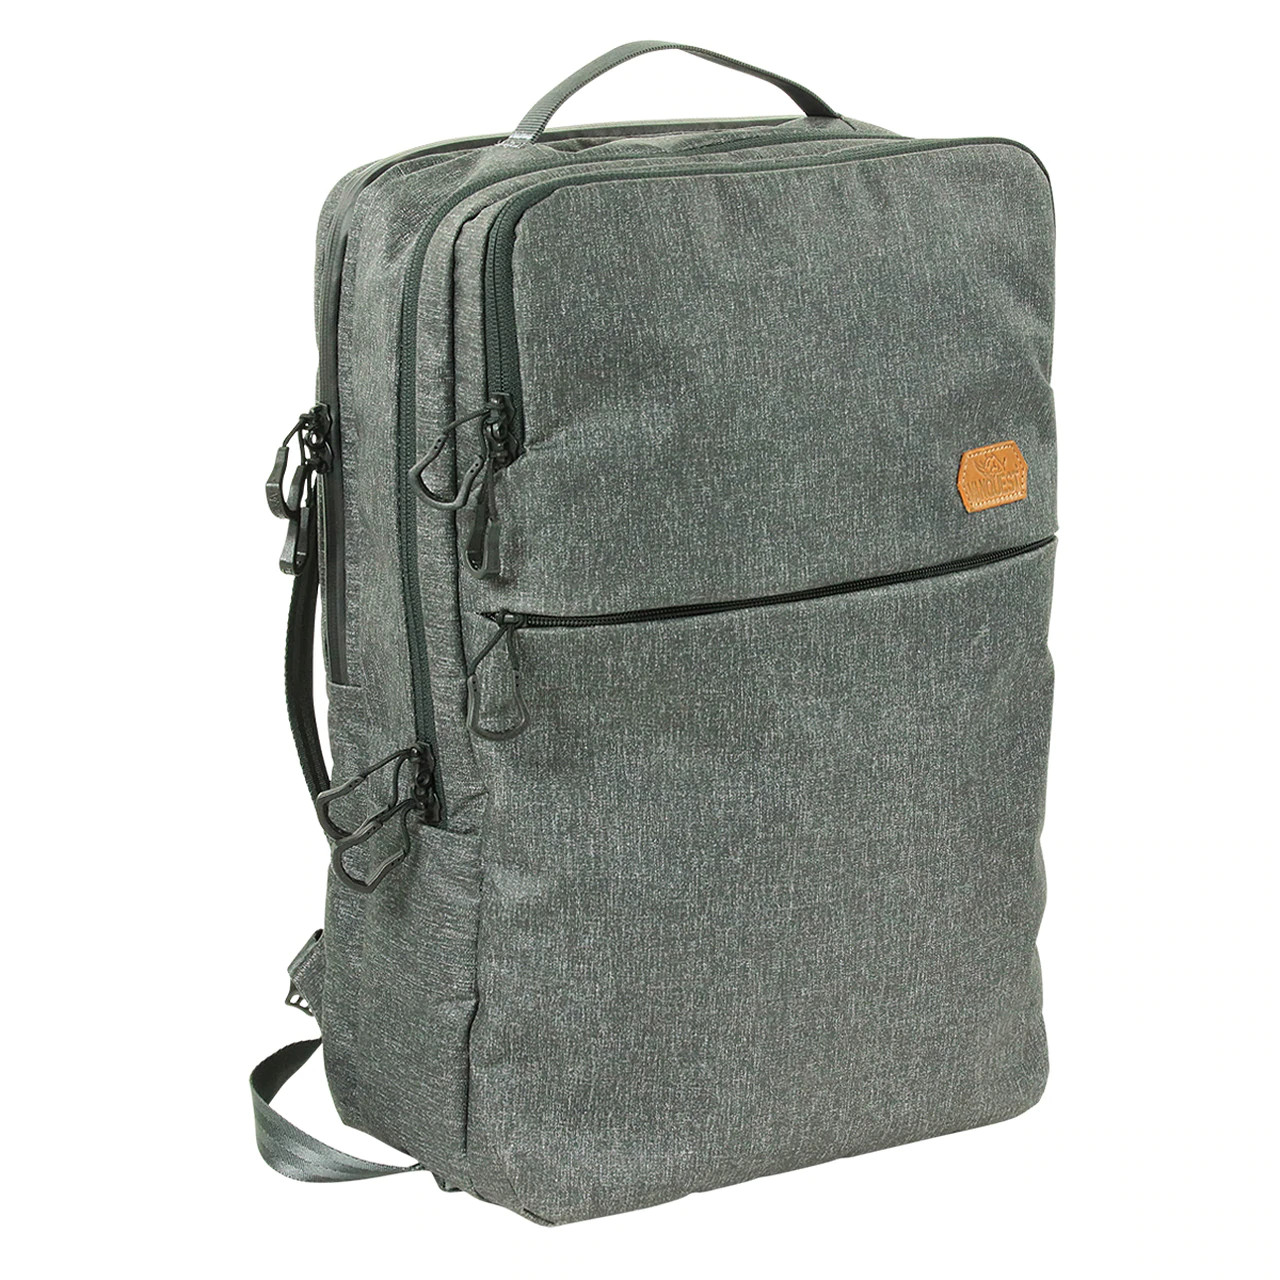 Vanquest ADDAX-25 Backpack Shadow Gray (25 Liters)